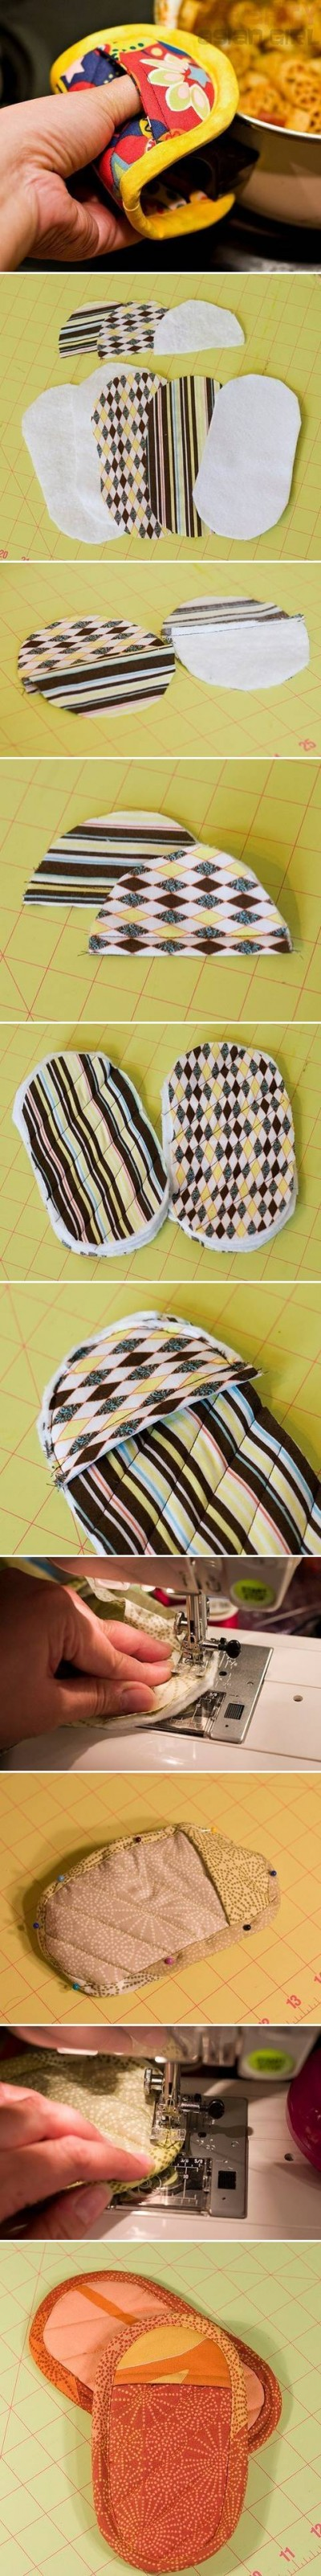 How to make Nice Pot Holder step by step DIY instructions